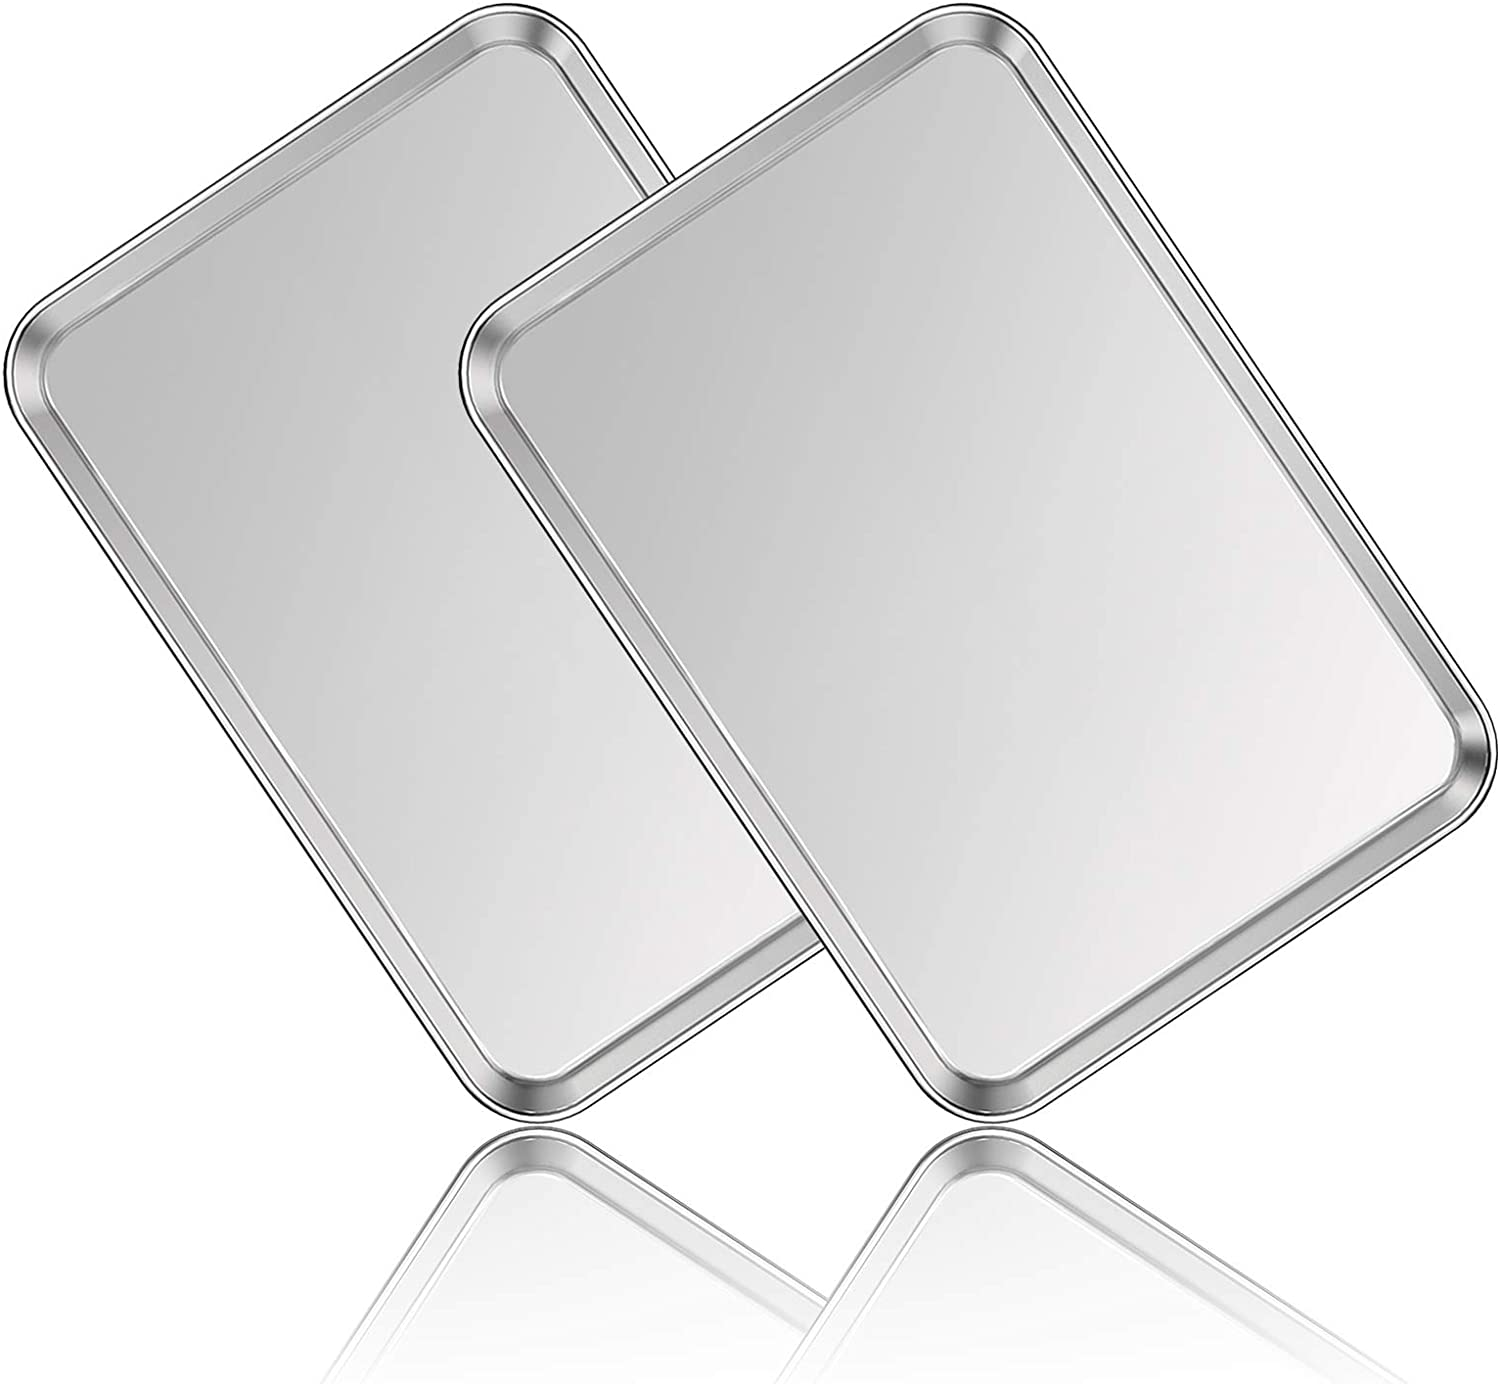 Stainless Steel Baking Sheet Set of 2, Deedro Cookie Sheet Metal Baking Pan Oven Tray, Non Toxic & Heavy Duty, Rust Free & Mirror Finish, Easy Clean & Dishwasher Safe, 20 x 14 x 1.3 Inch